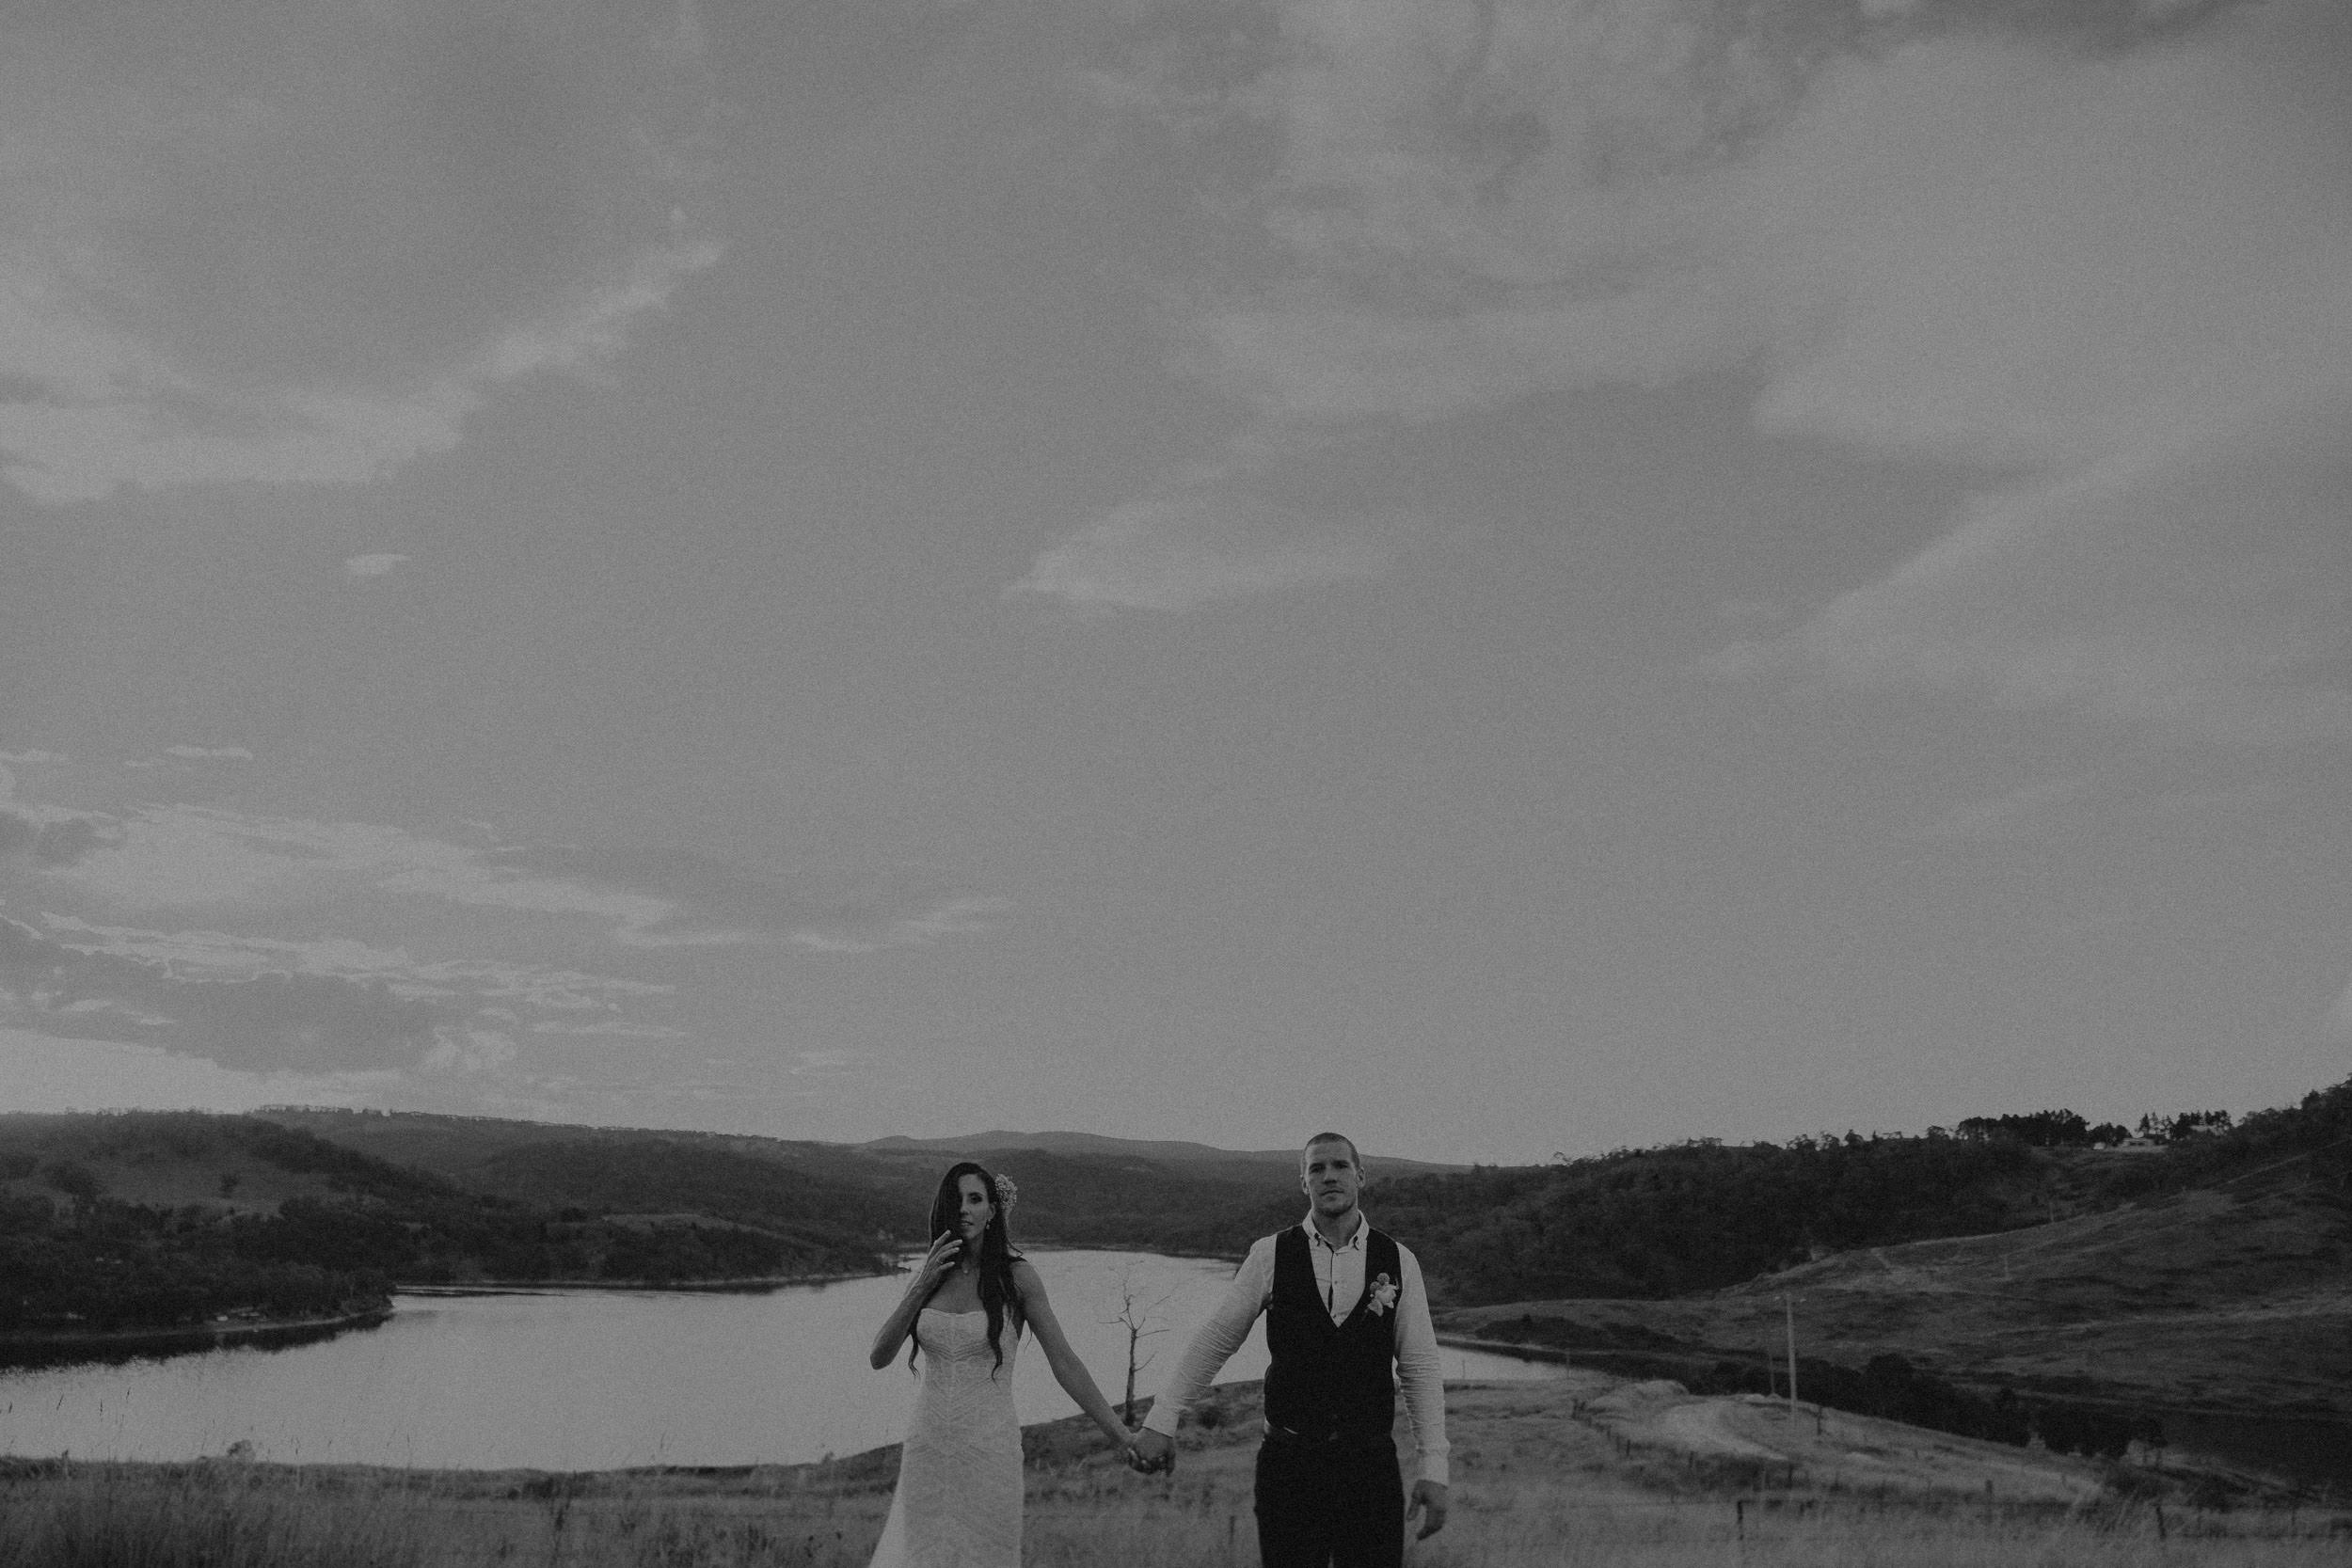 Bride and groom having sunset portraits for their wedding by Lake Lyell, Lithgow